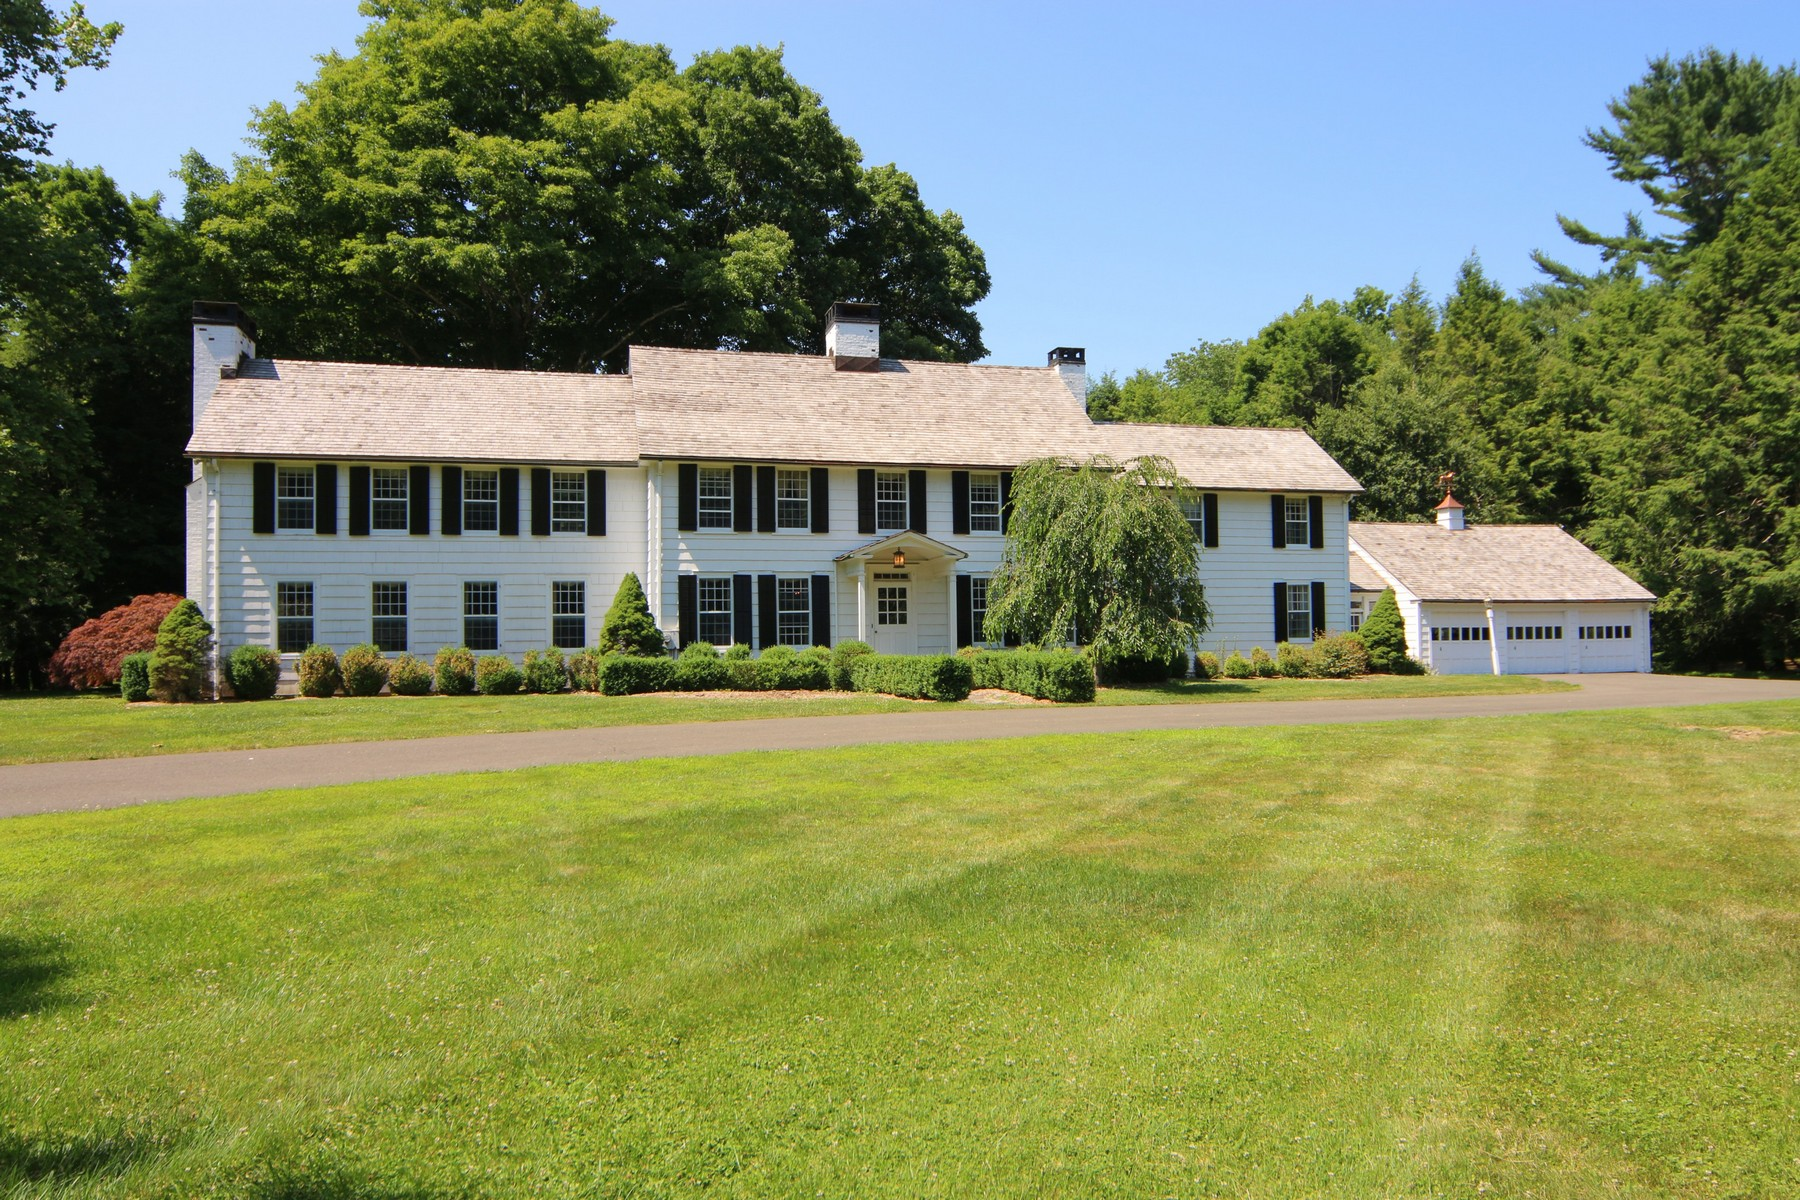 Single Family Home for Sale at HARVARD HOUSE 7 Old Redding Road Easton, Connecticut, 06612 United States